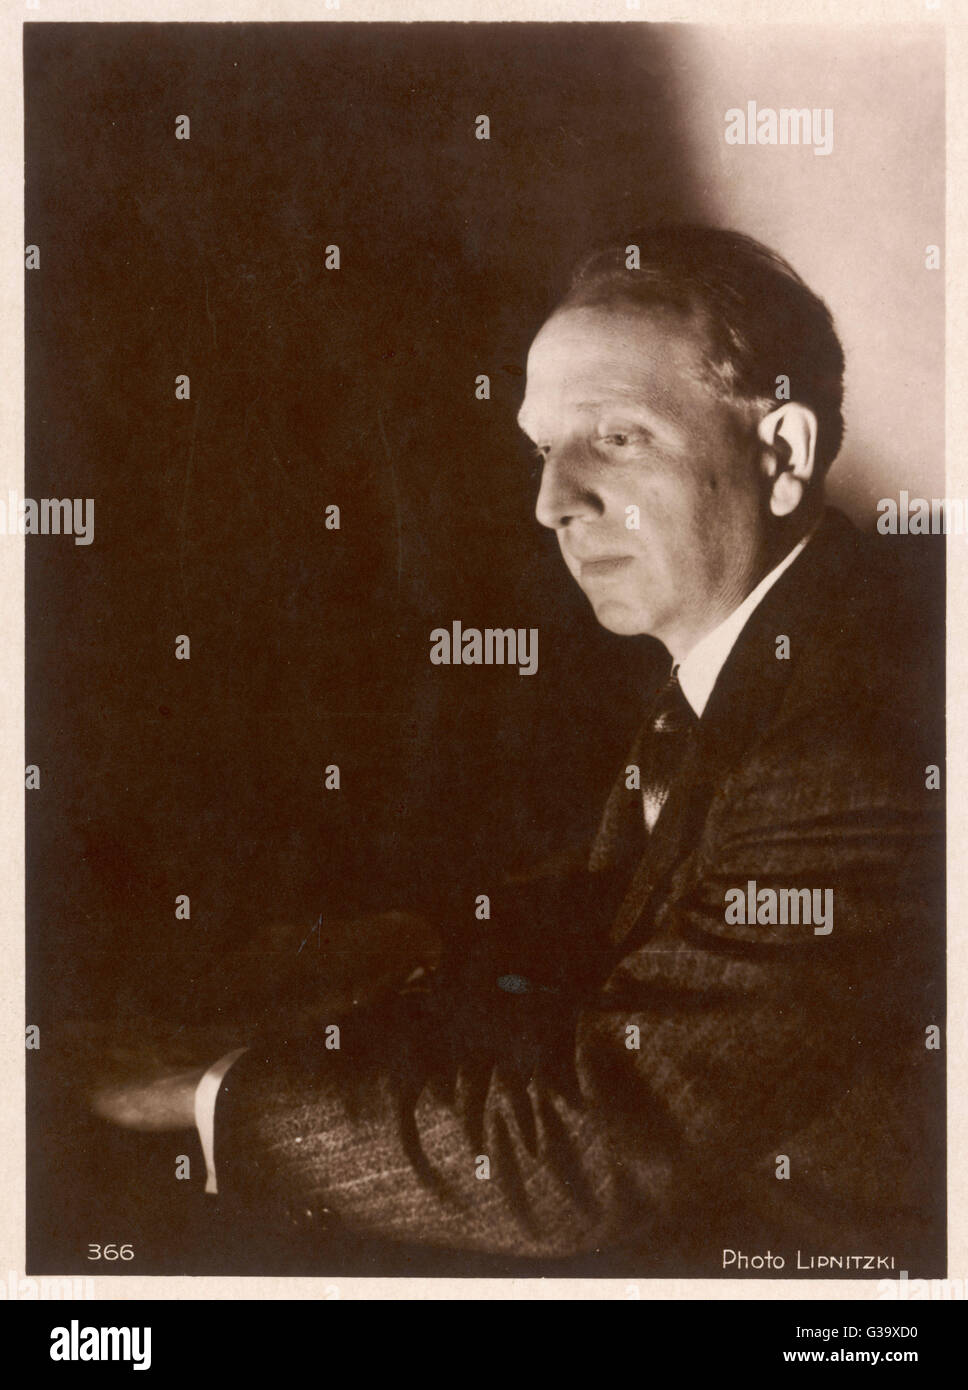 PAUL PARAY  French musician        Date: 1886 - 1979 - Stock Image